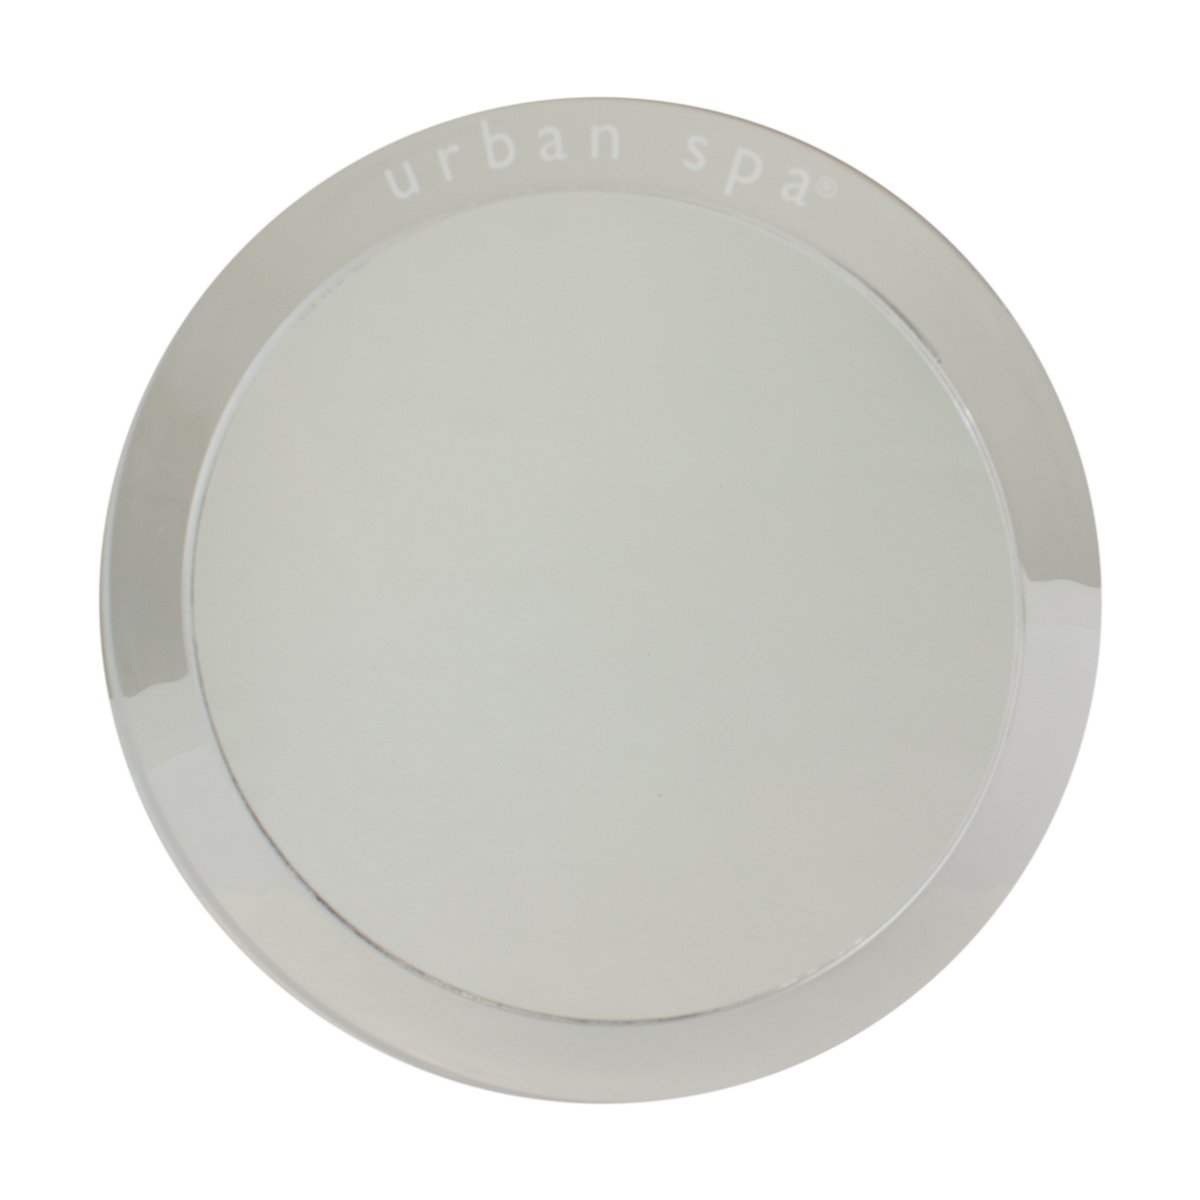 Mens shower mirror Urban Spa